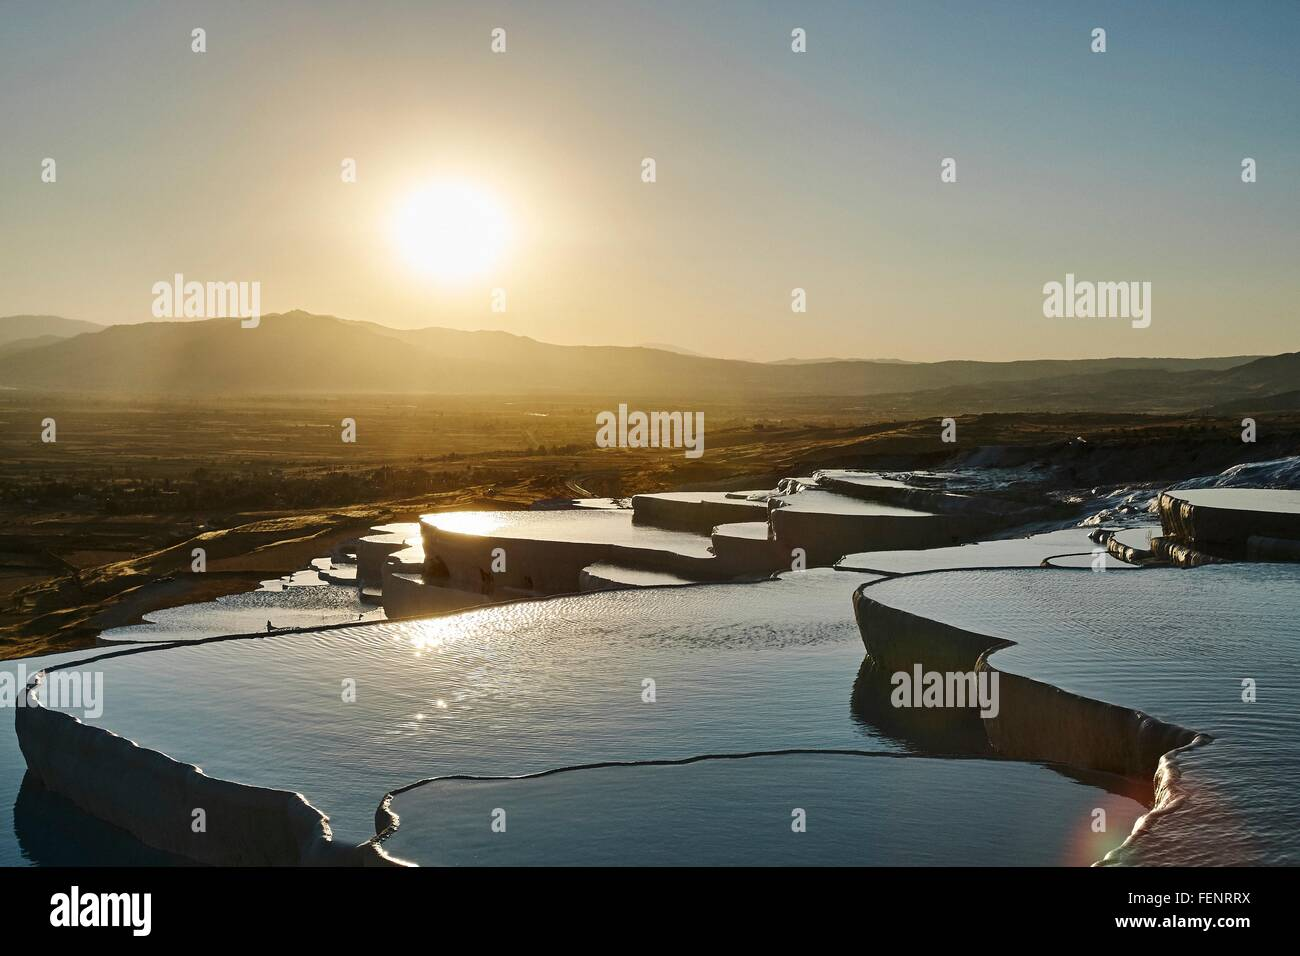 Sunset at hot spring terraces, Pamukkale, Anatolia, Turkey - Stock Image